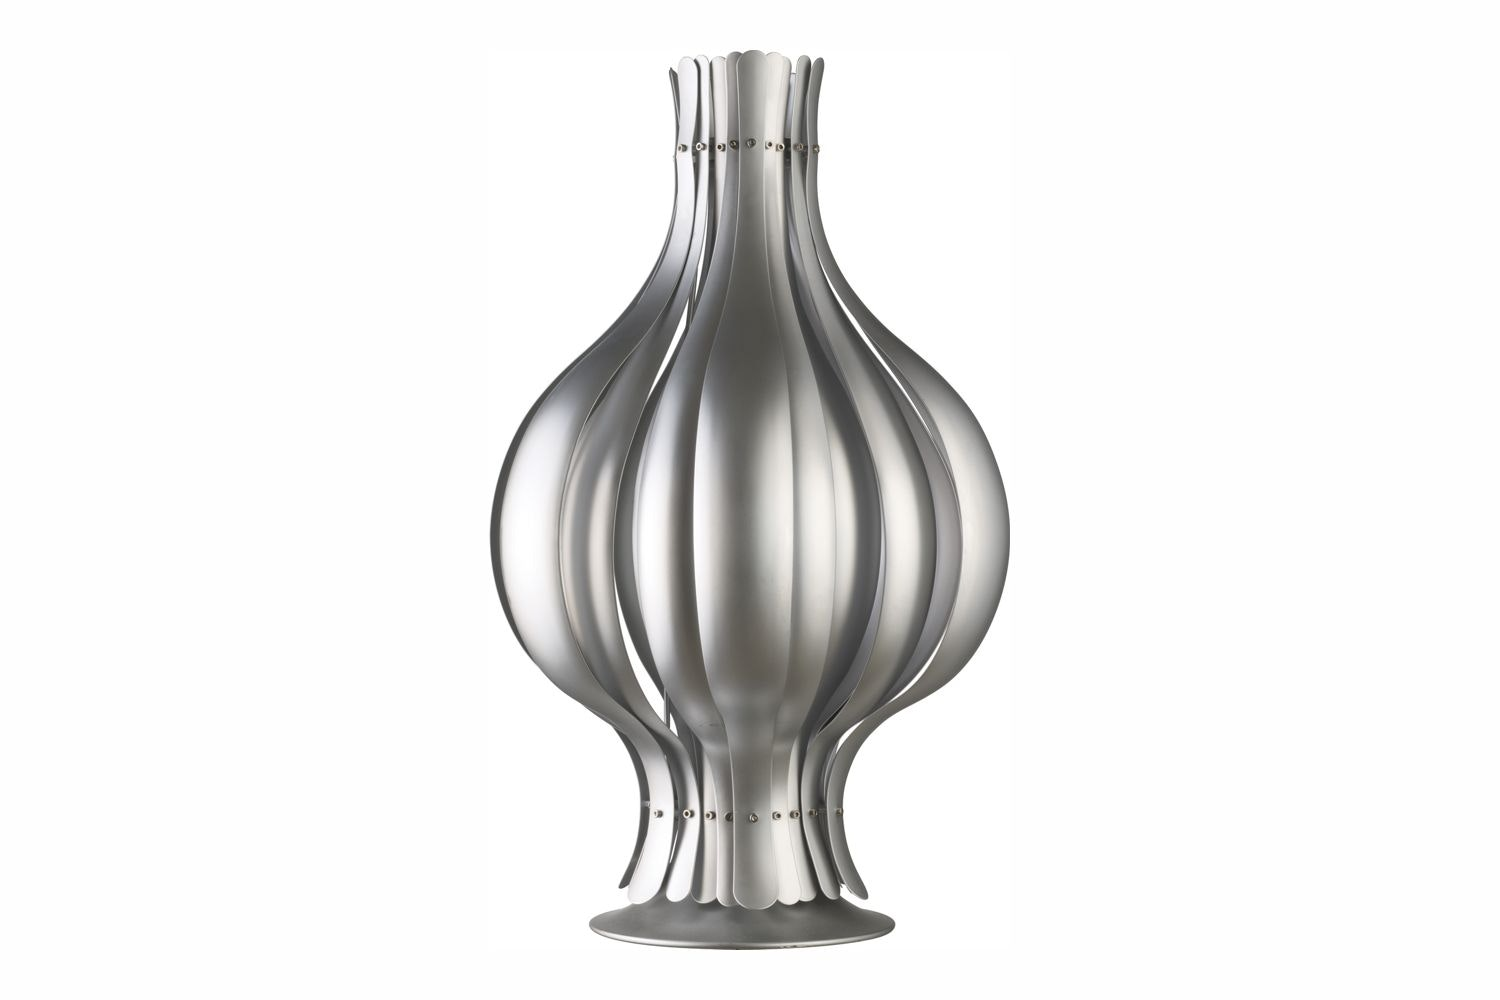 Onion Table Lamp in Silver by Verner Panton for Verpan